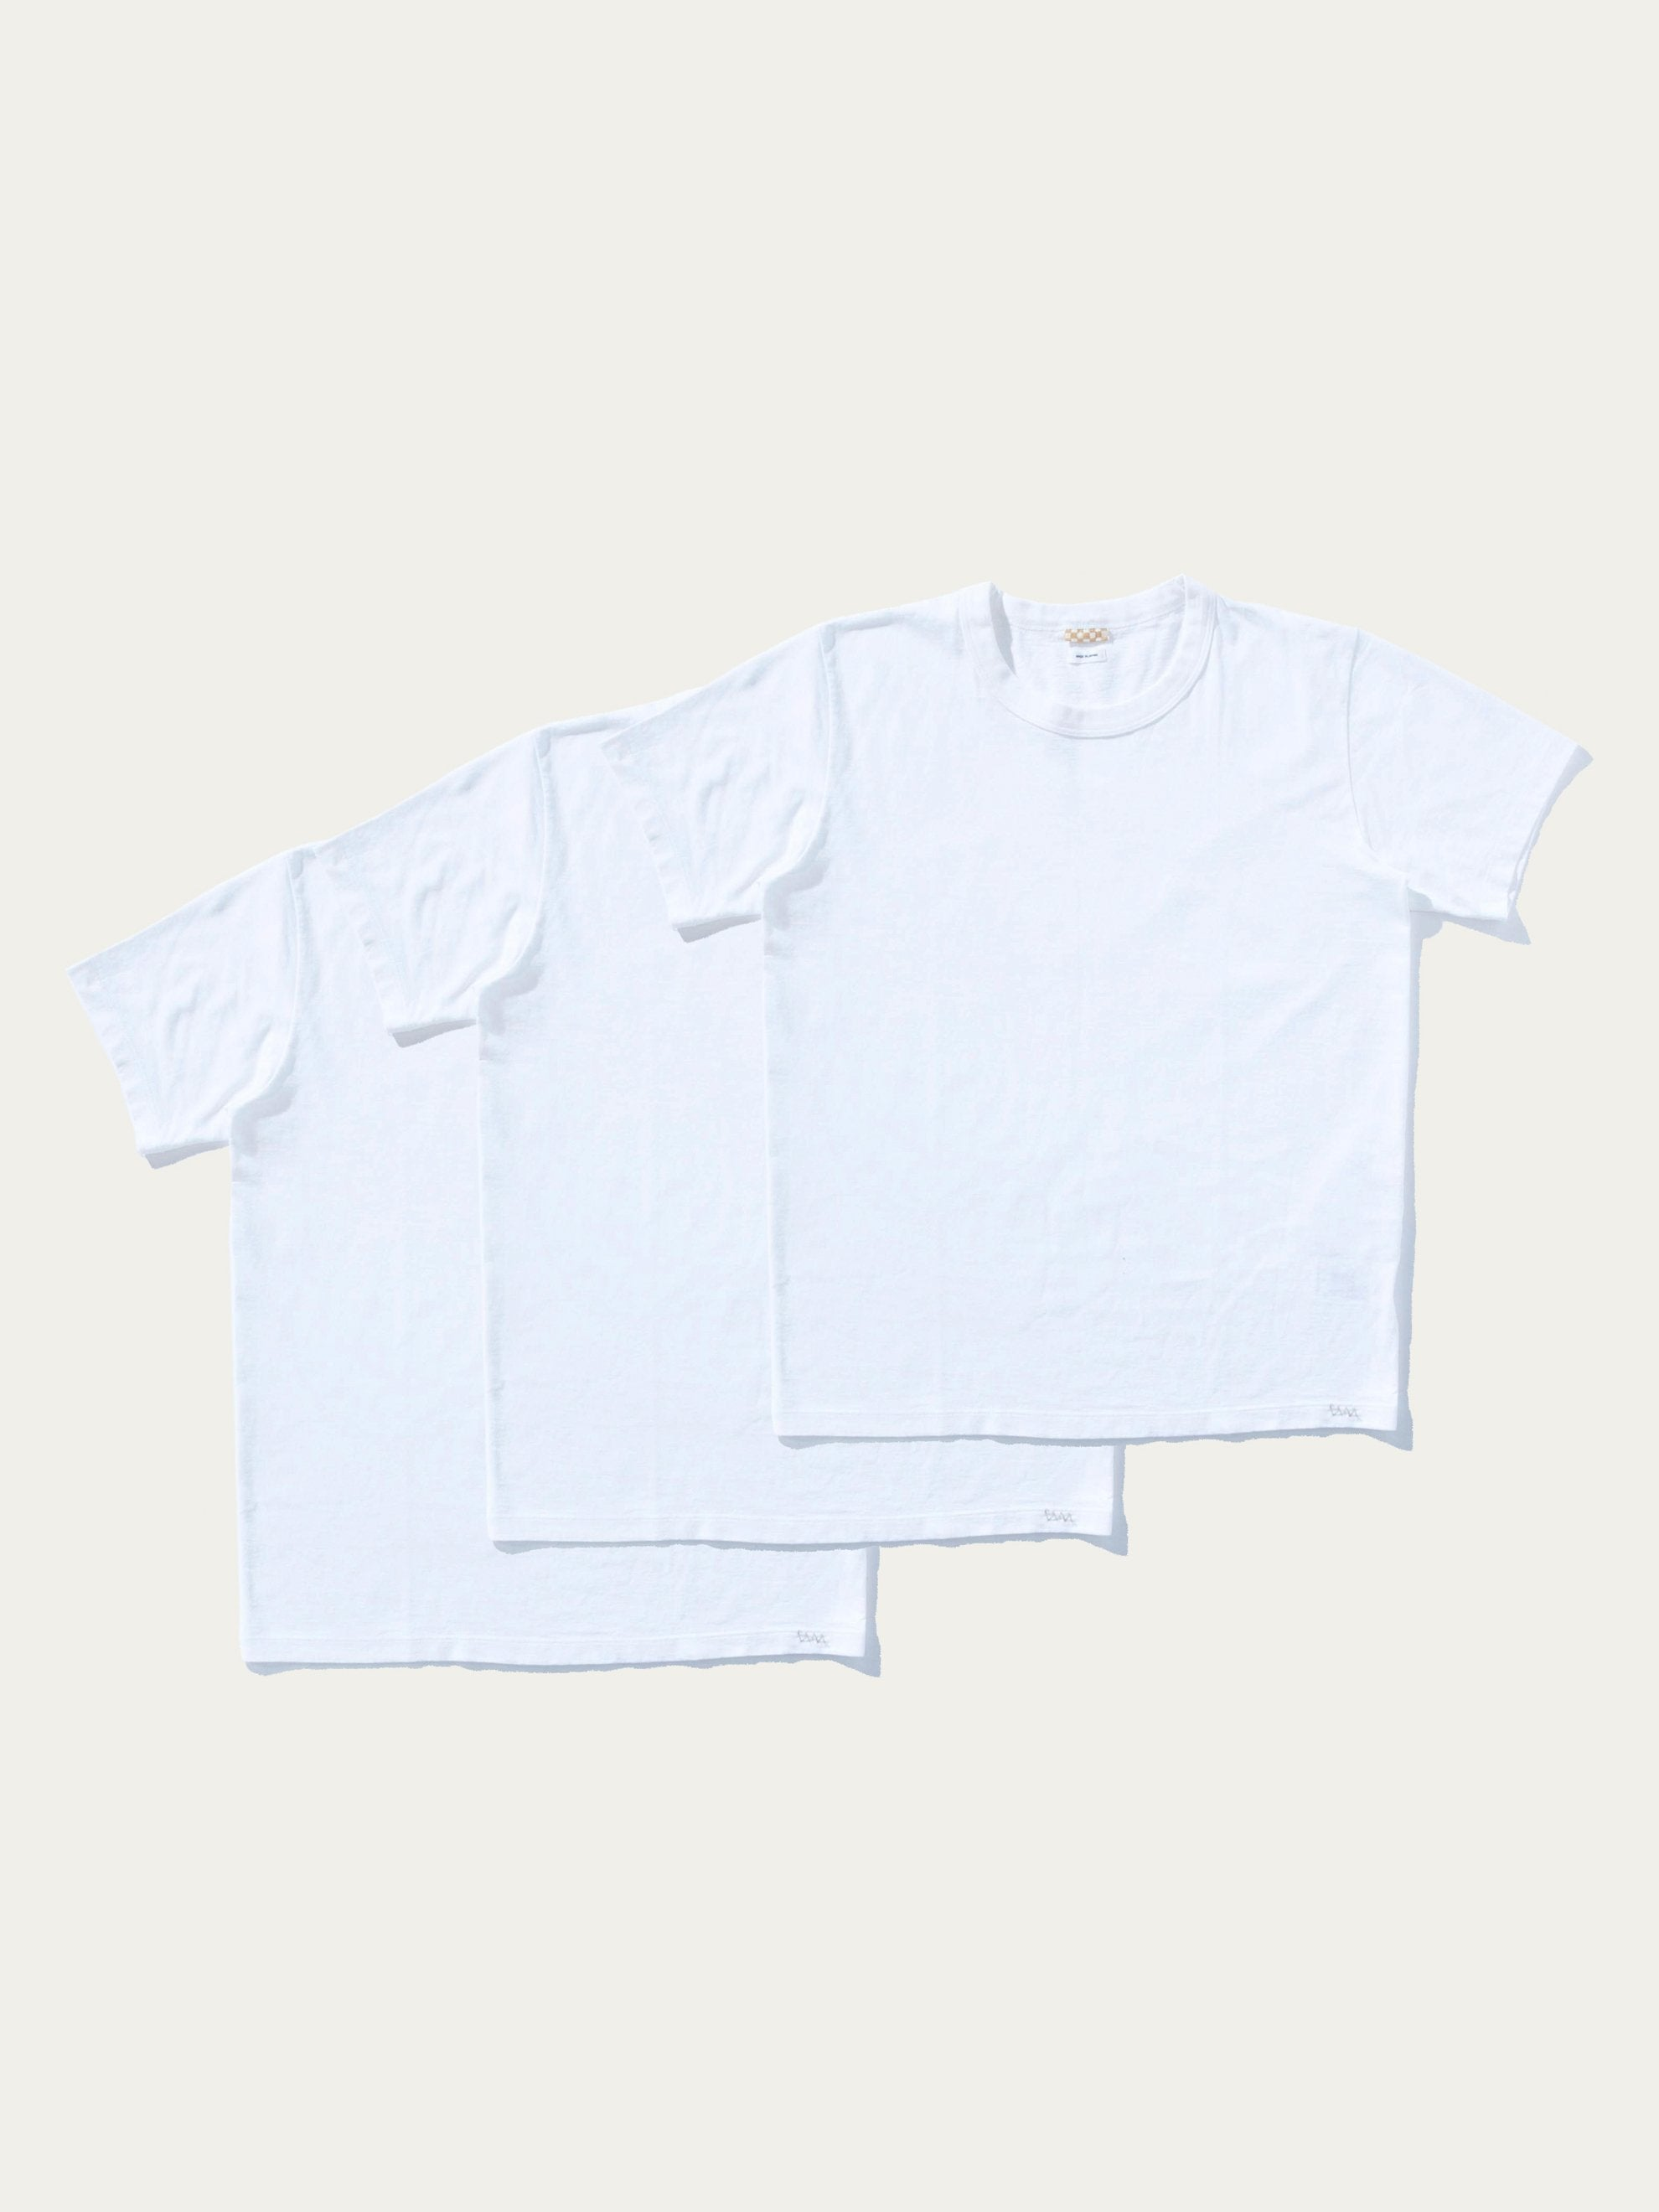 White Sublib Crew 3-Pack S/S (Wide) 6